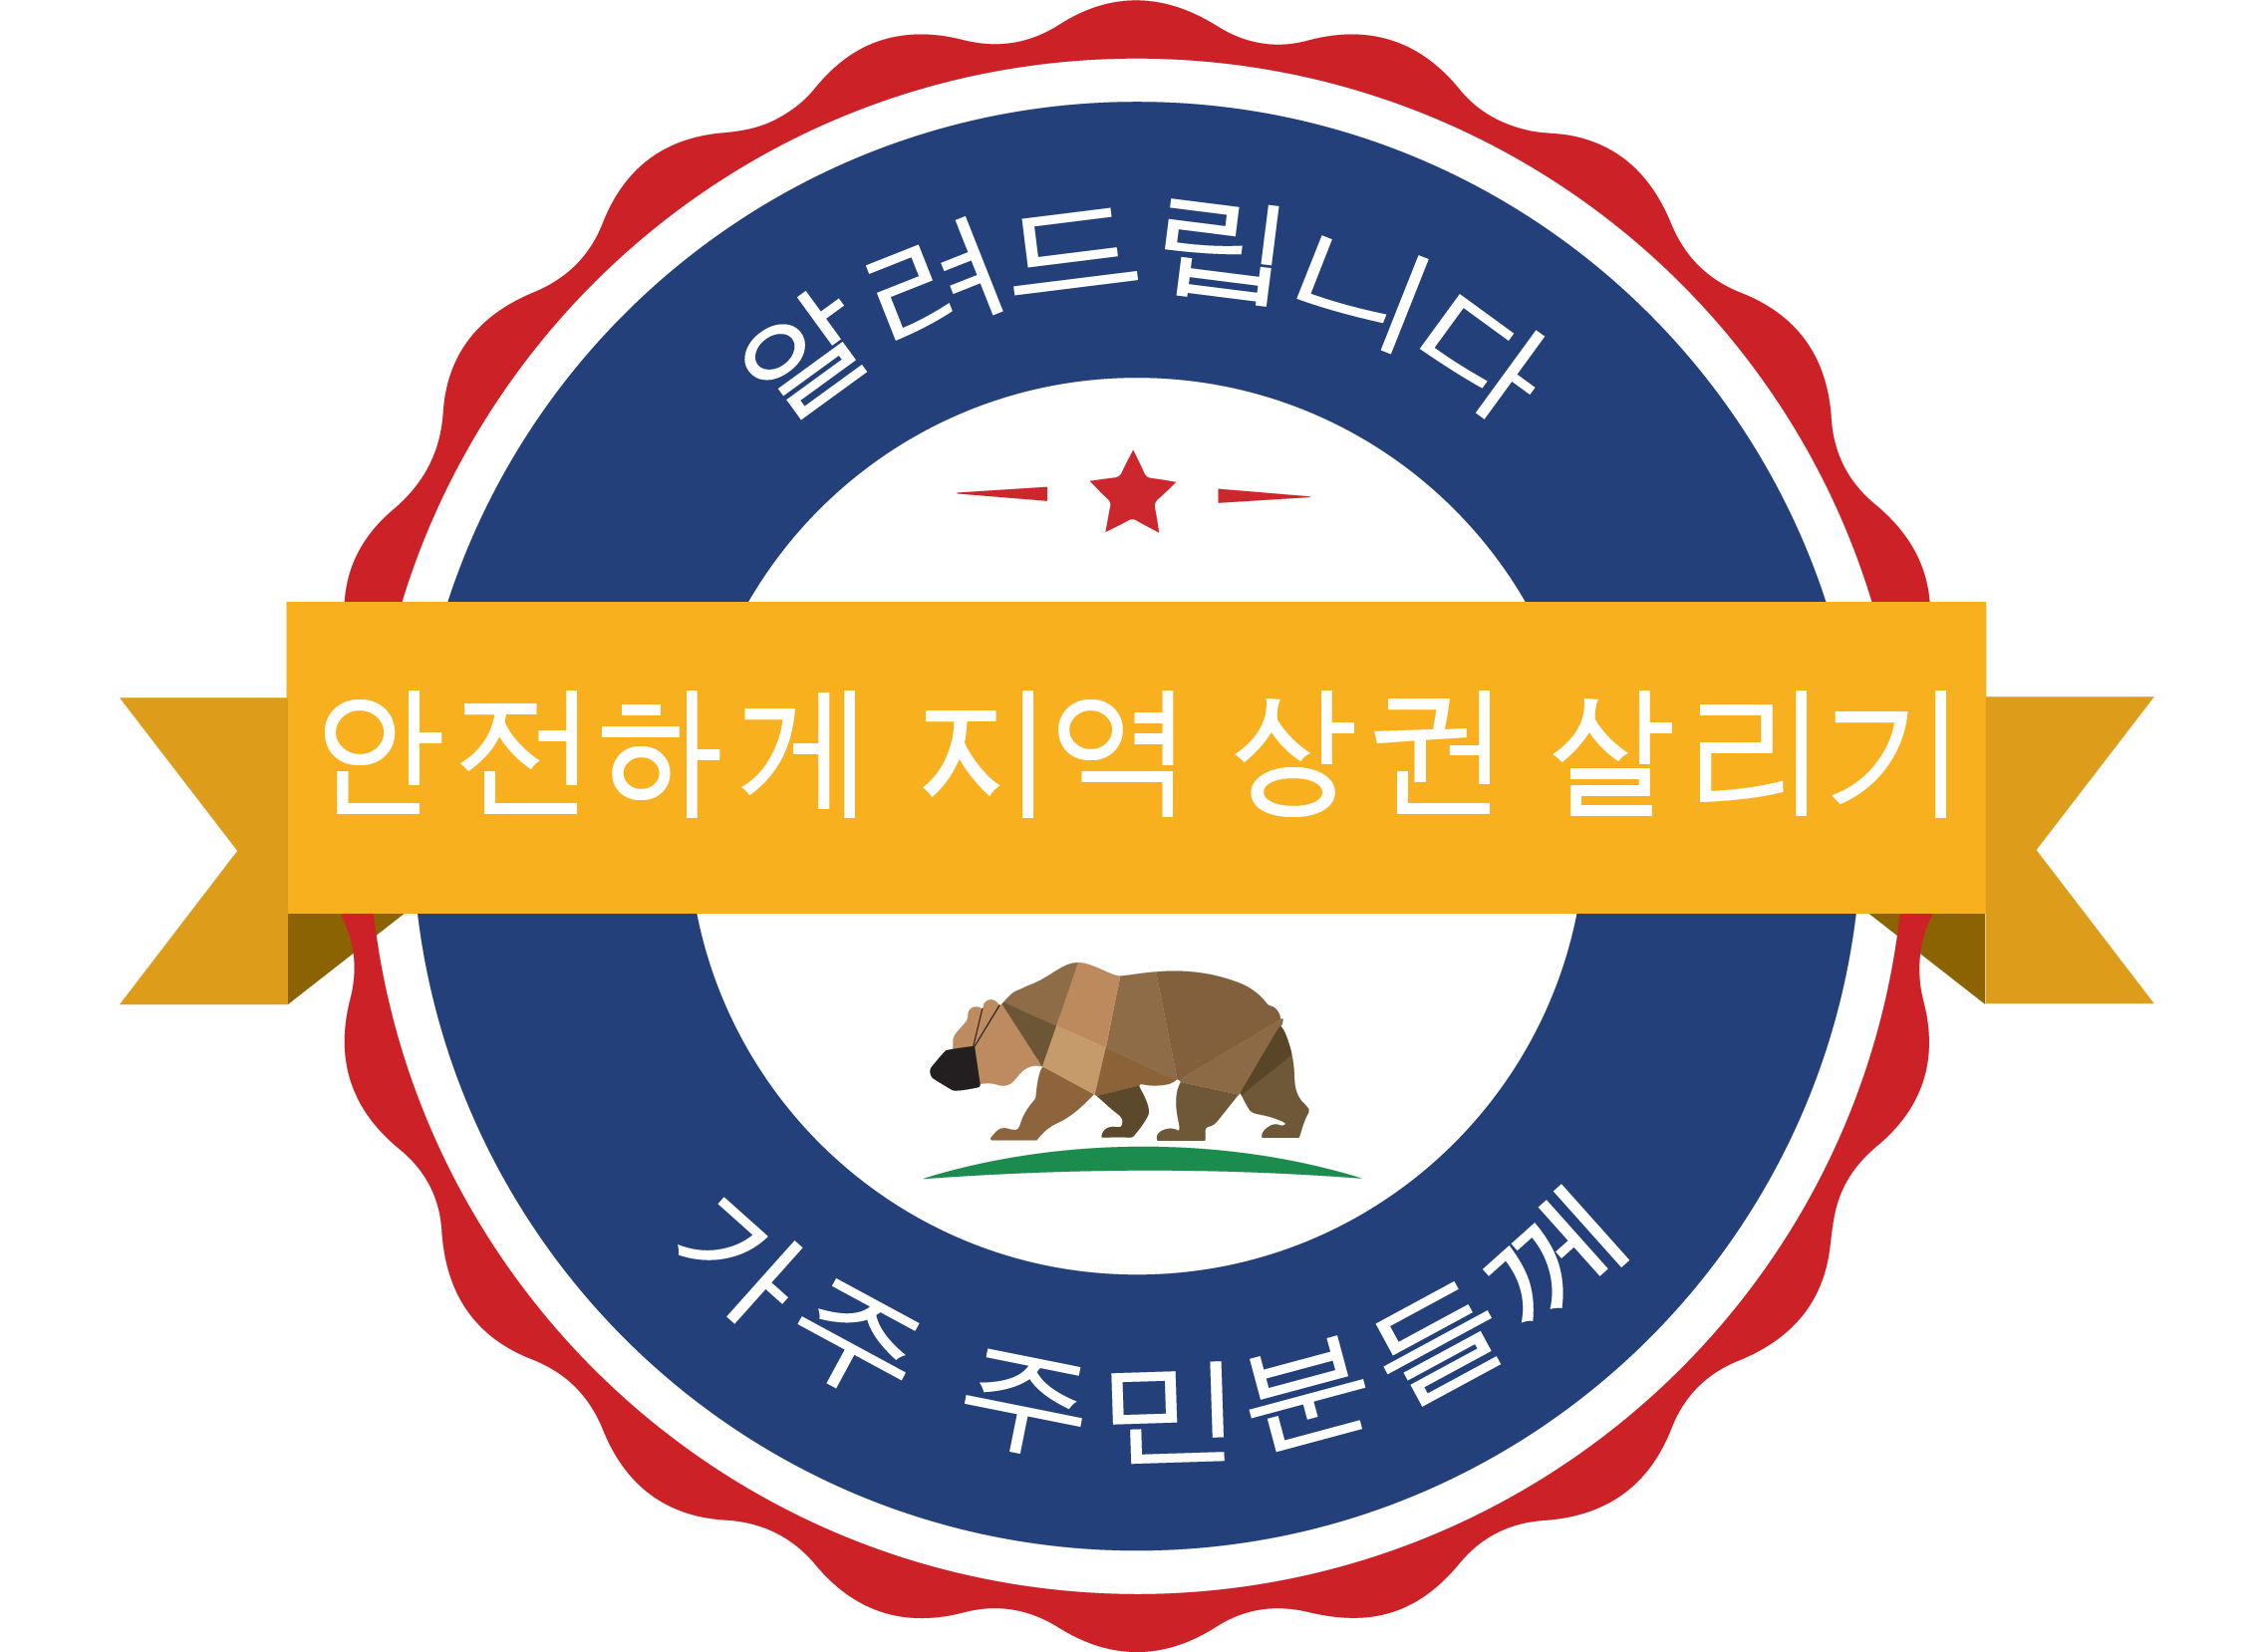 ShopSafeShopLocal Korean Logo